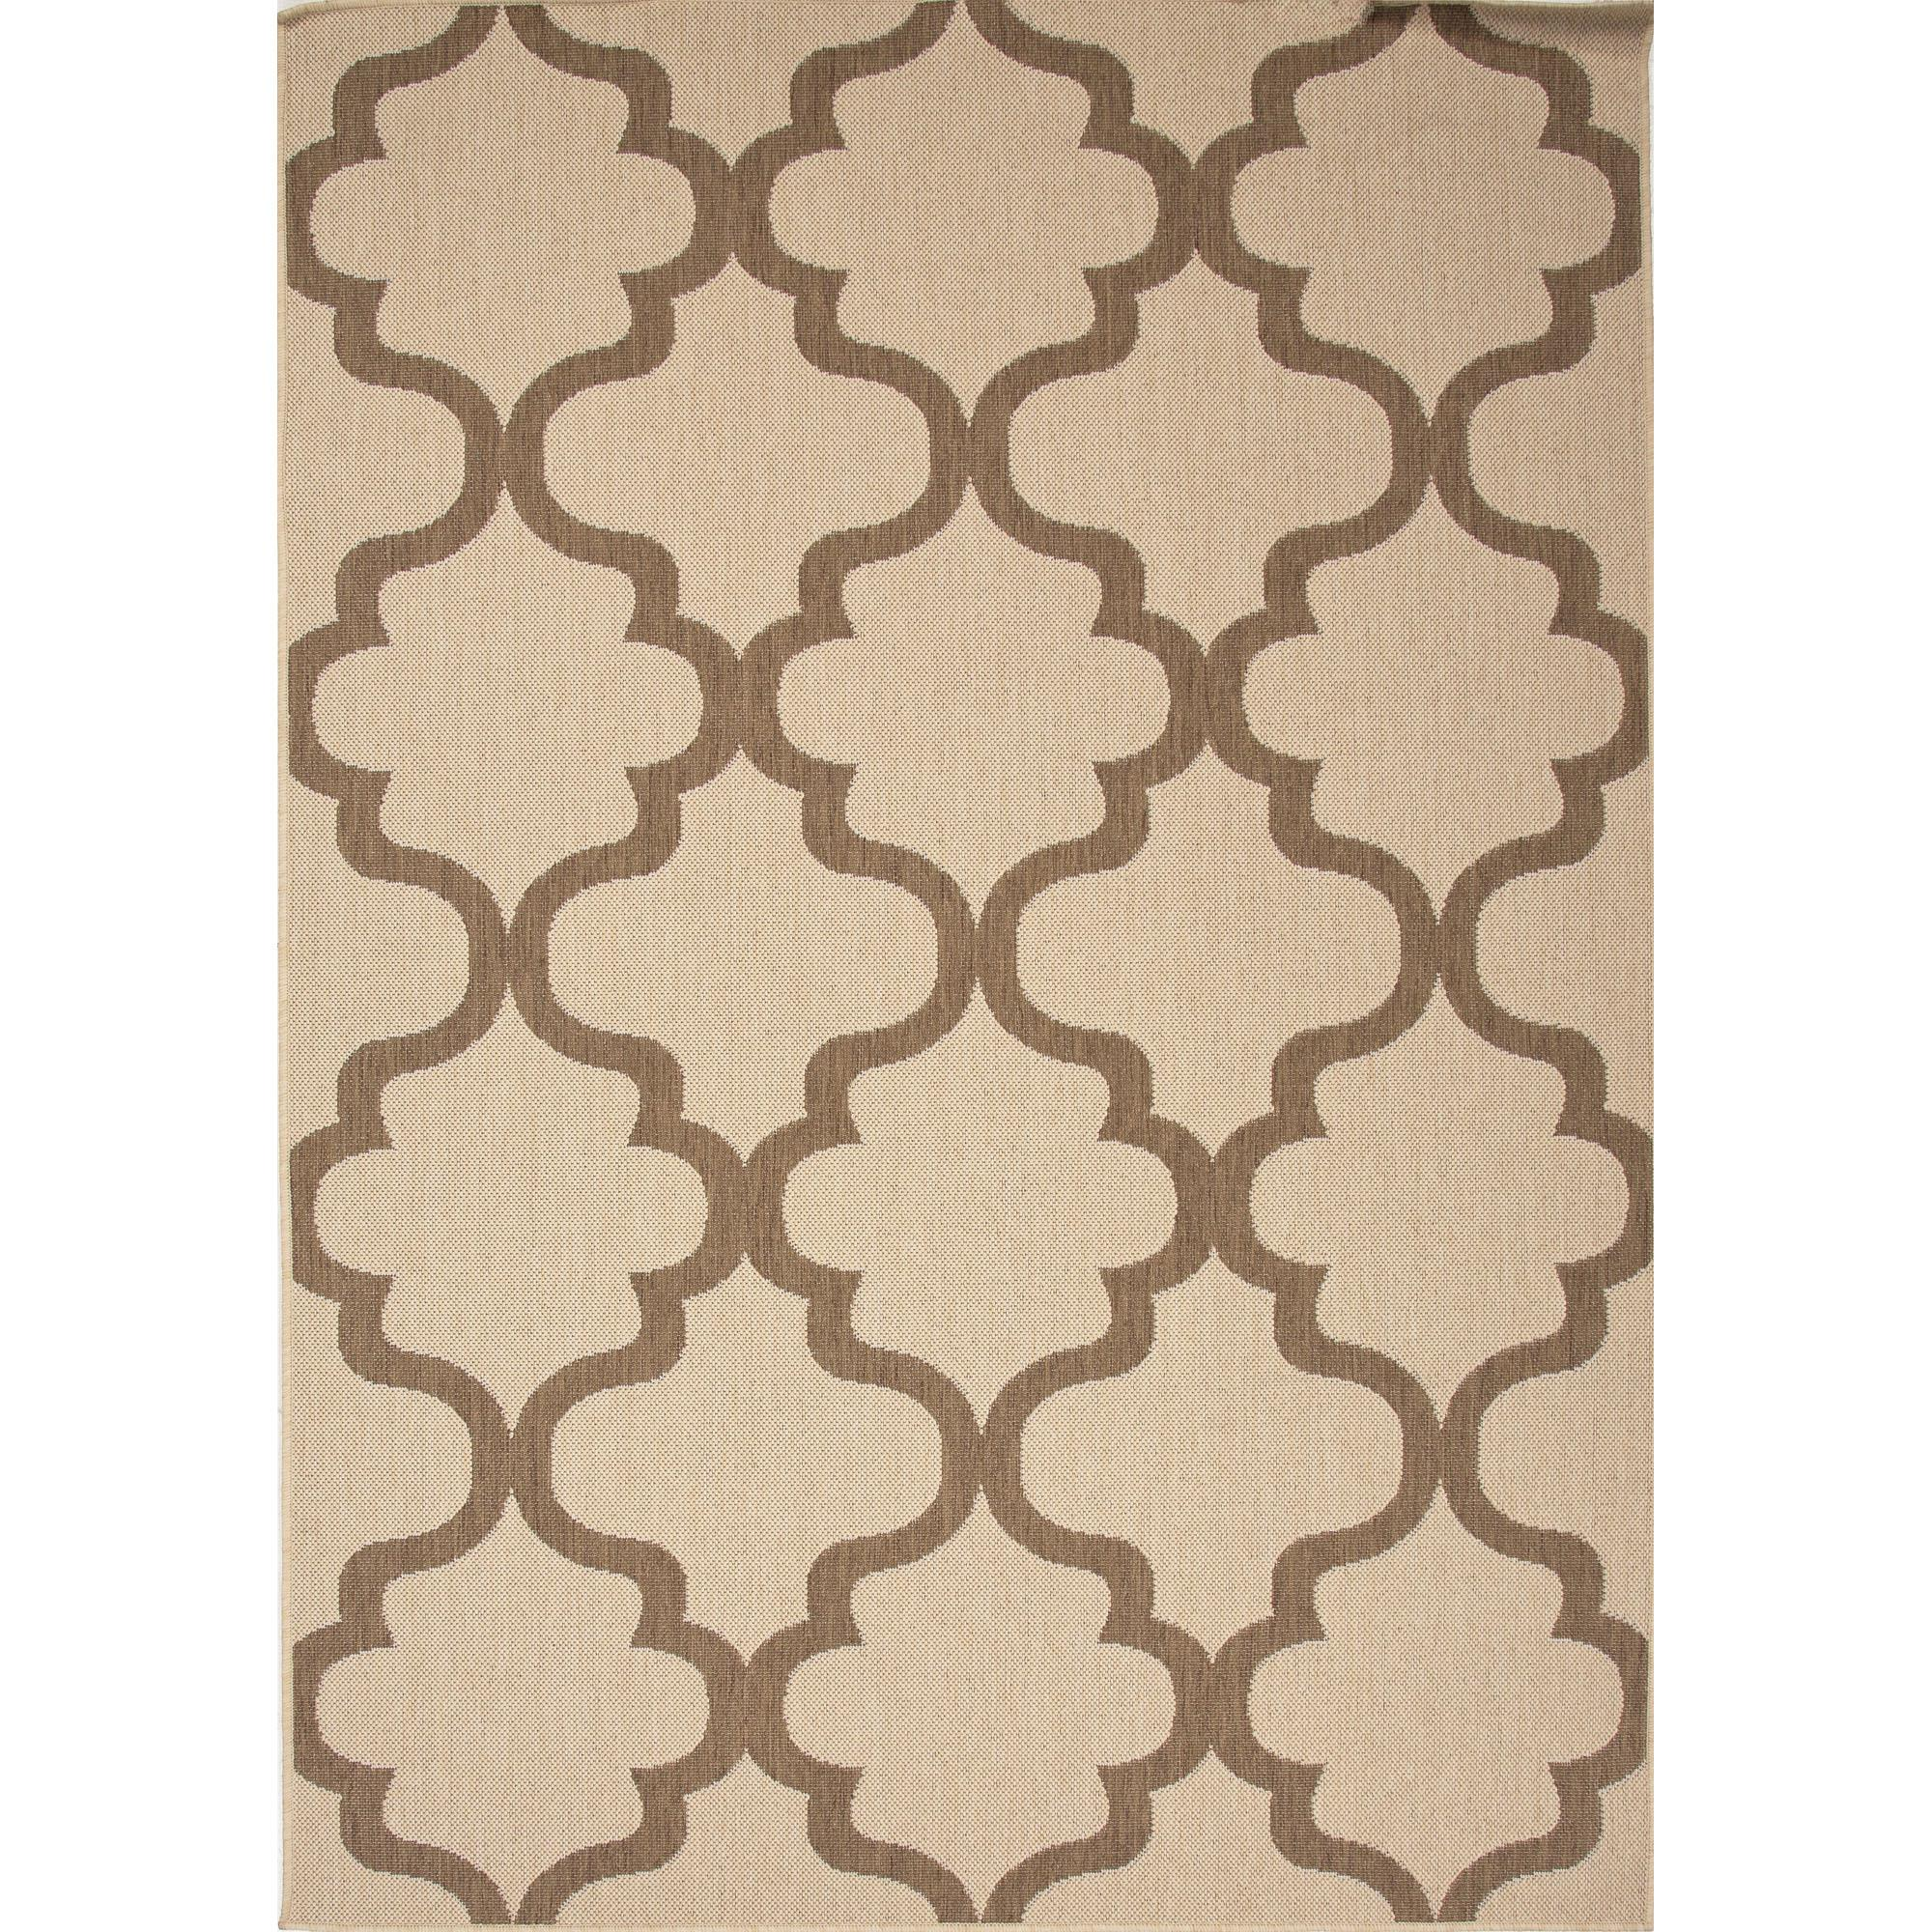 JAIPUR Rugs Breeze 5.3 x 7.6 Rug - Item Number: RUG121451